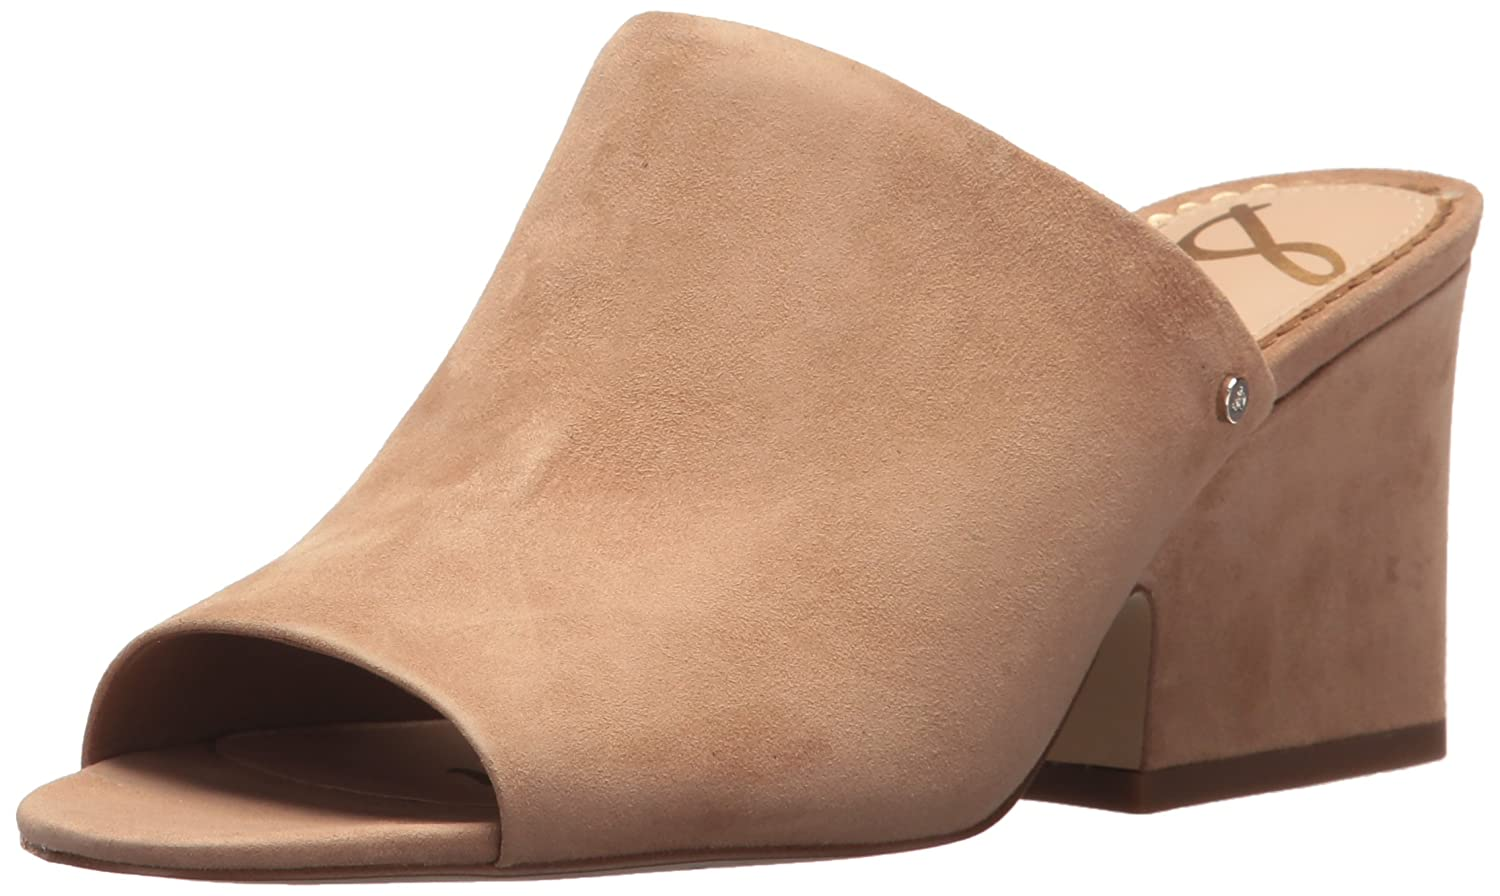 Sam Edelman Women's Rheta Wedge Sandal B072NBMQV4 10 B(M) US|Golden Caramel Suede